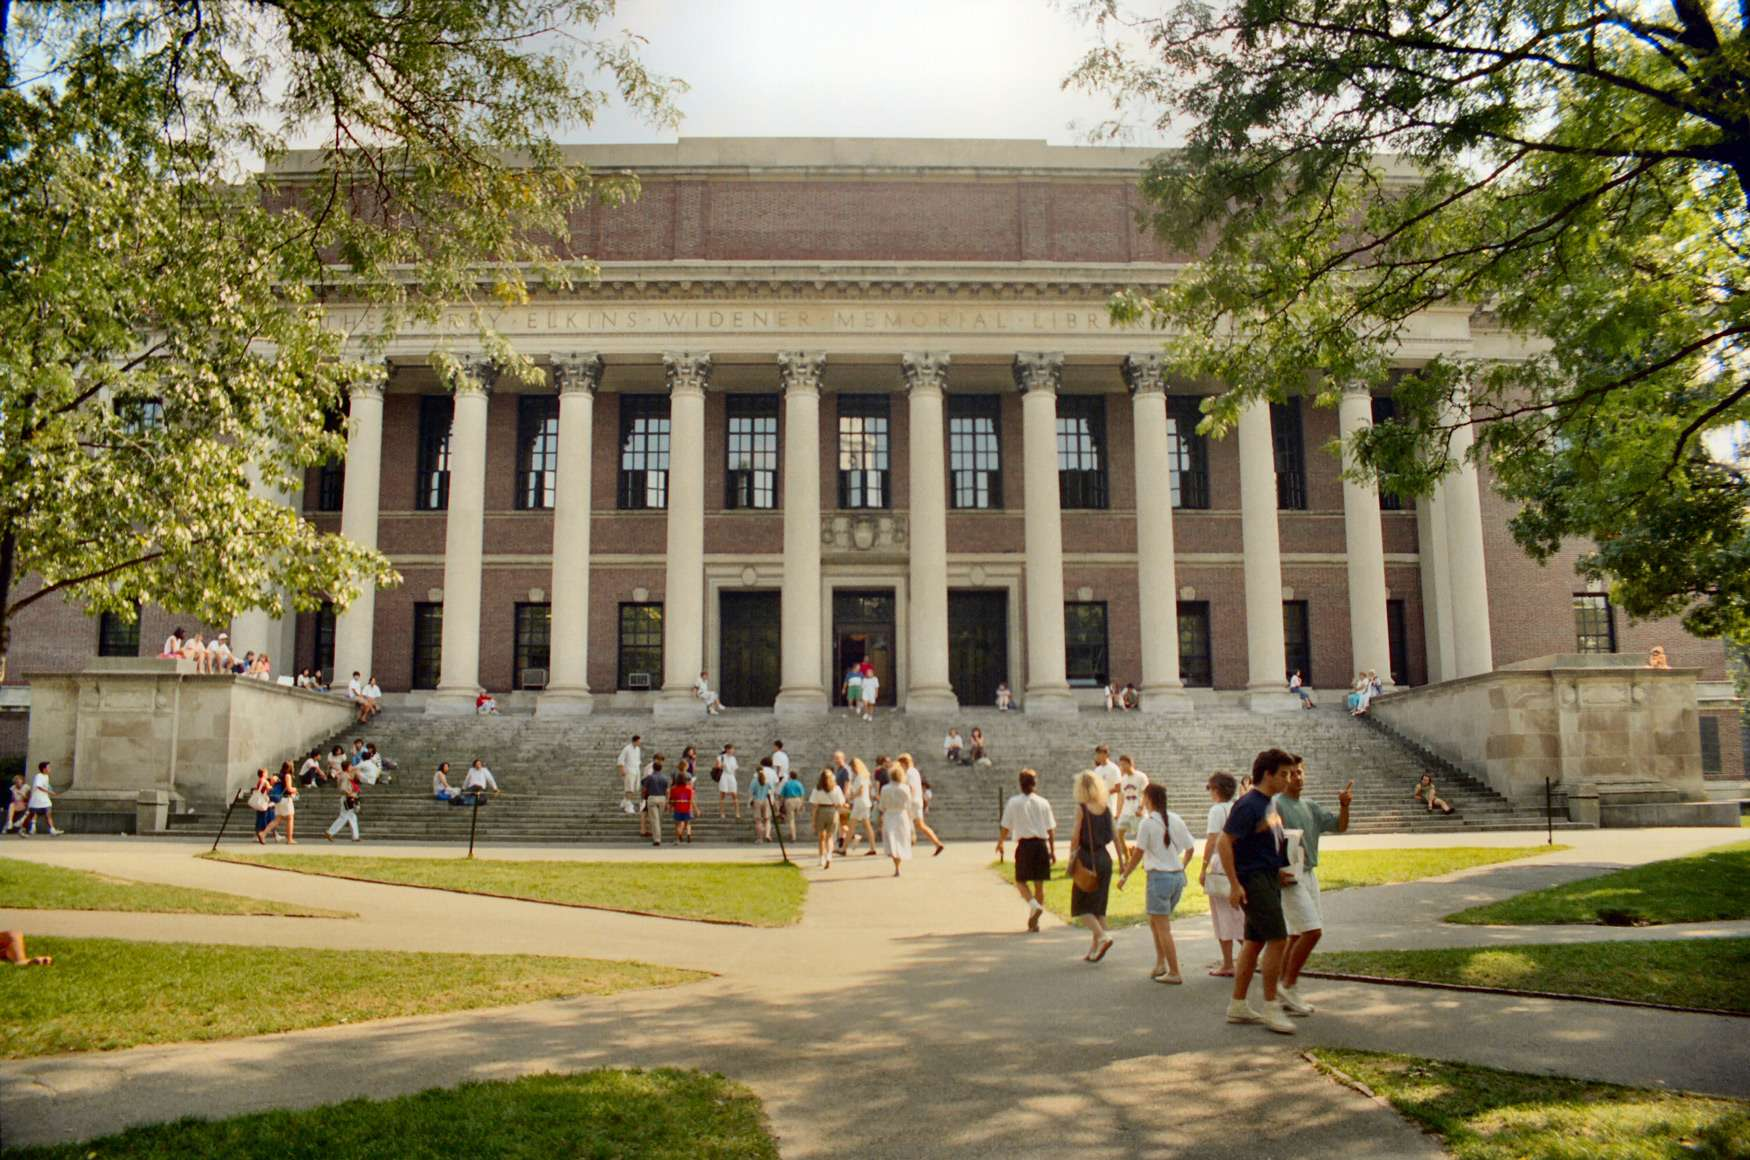 Cambridge - The Widener Library (1915) - Harvard University - Massachusetts